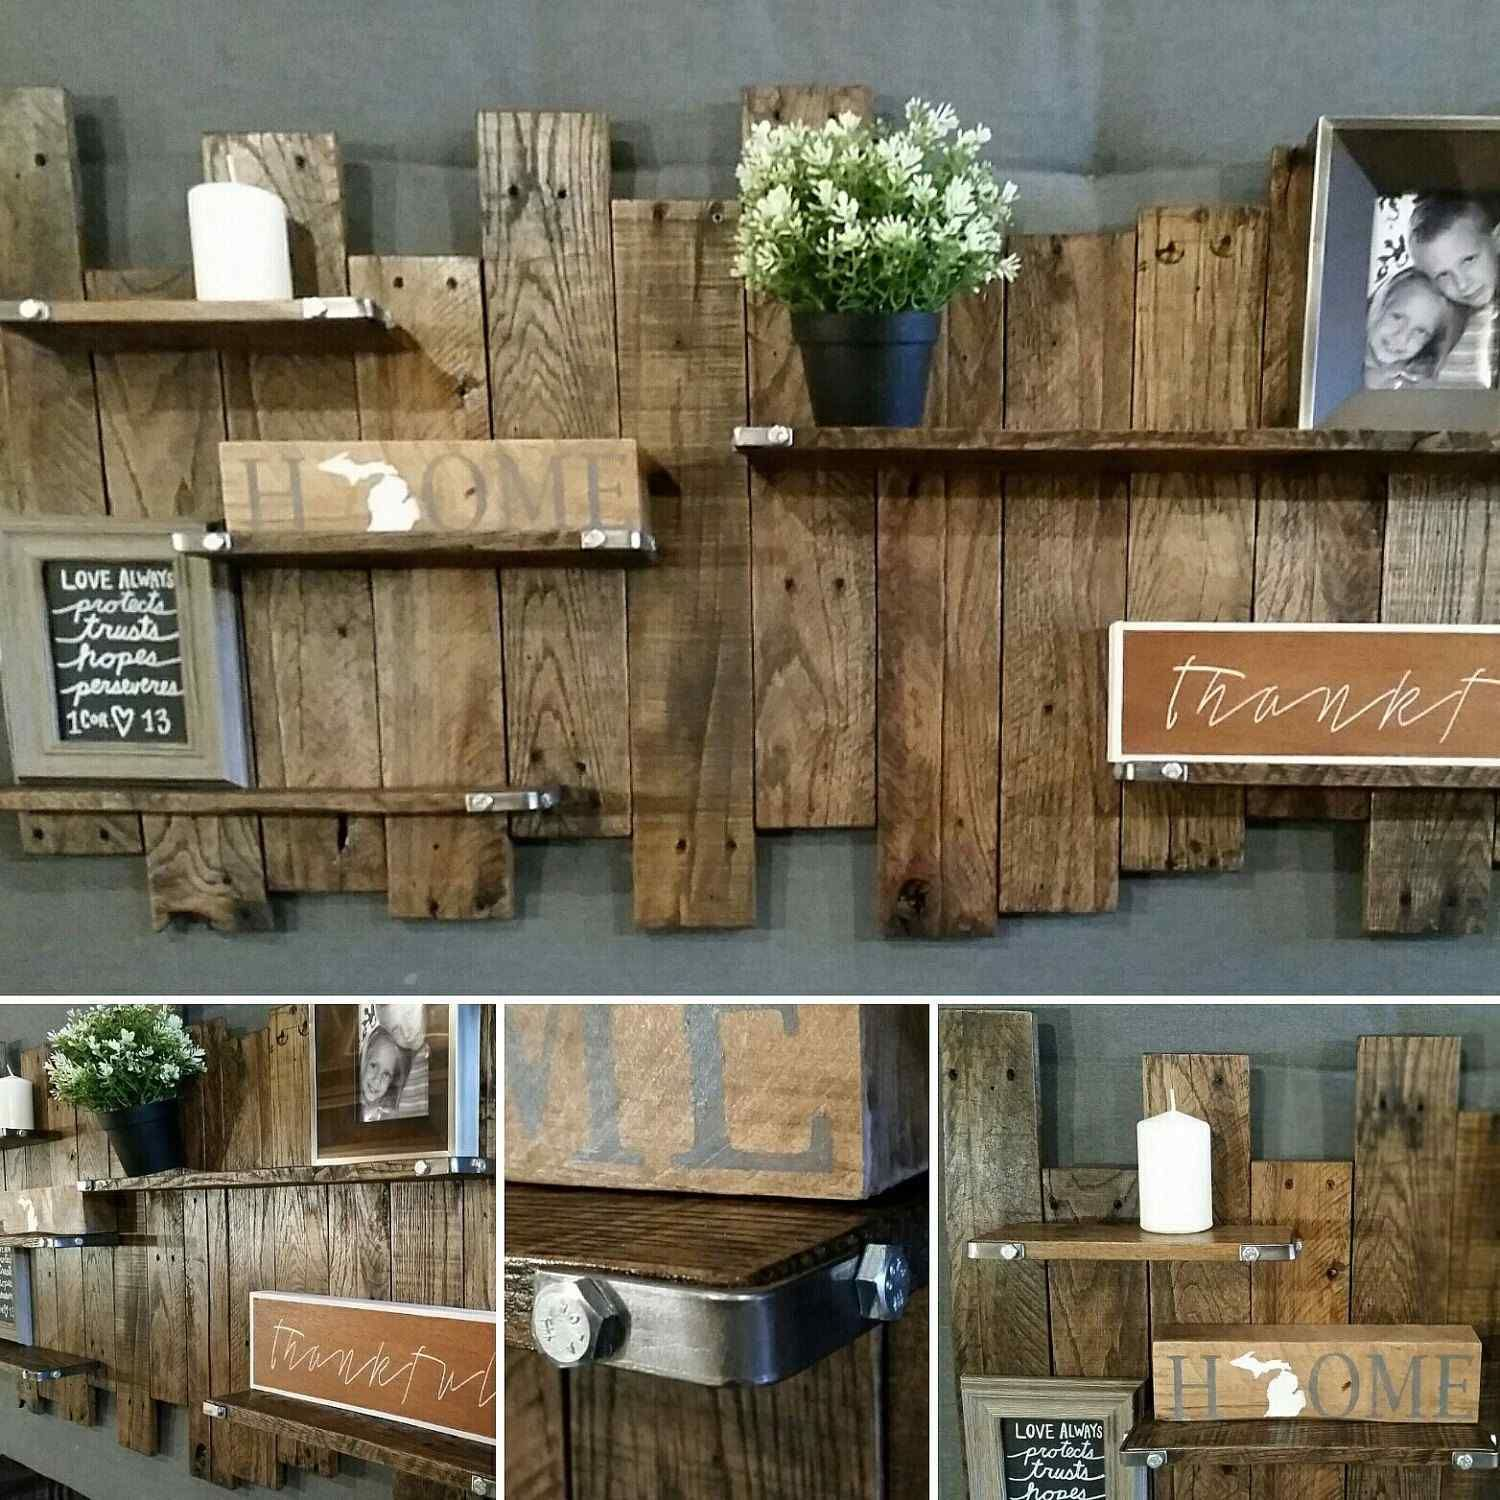 Rustic Decor With Cement Accent Wall: +19 Creative Ways Fresh Rustic Accent Wall Decor